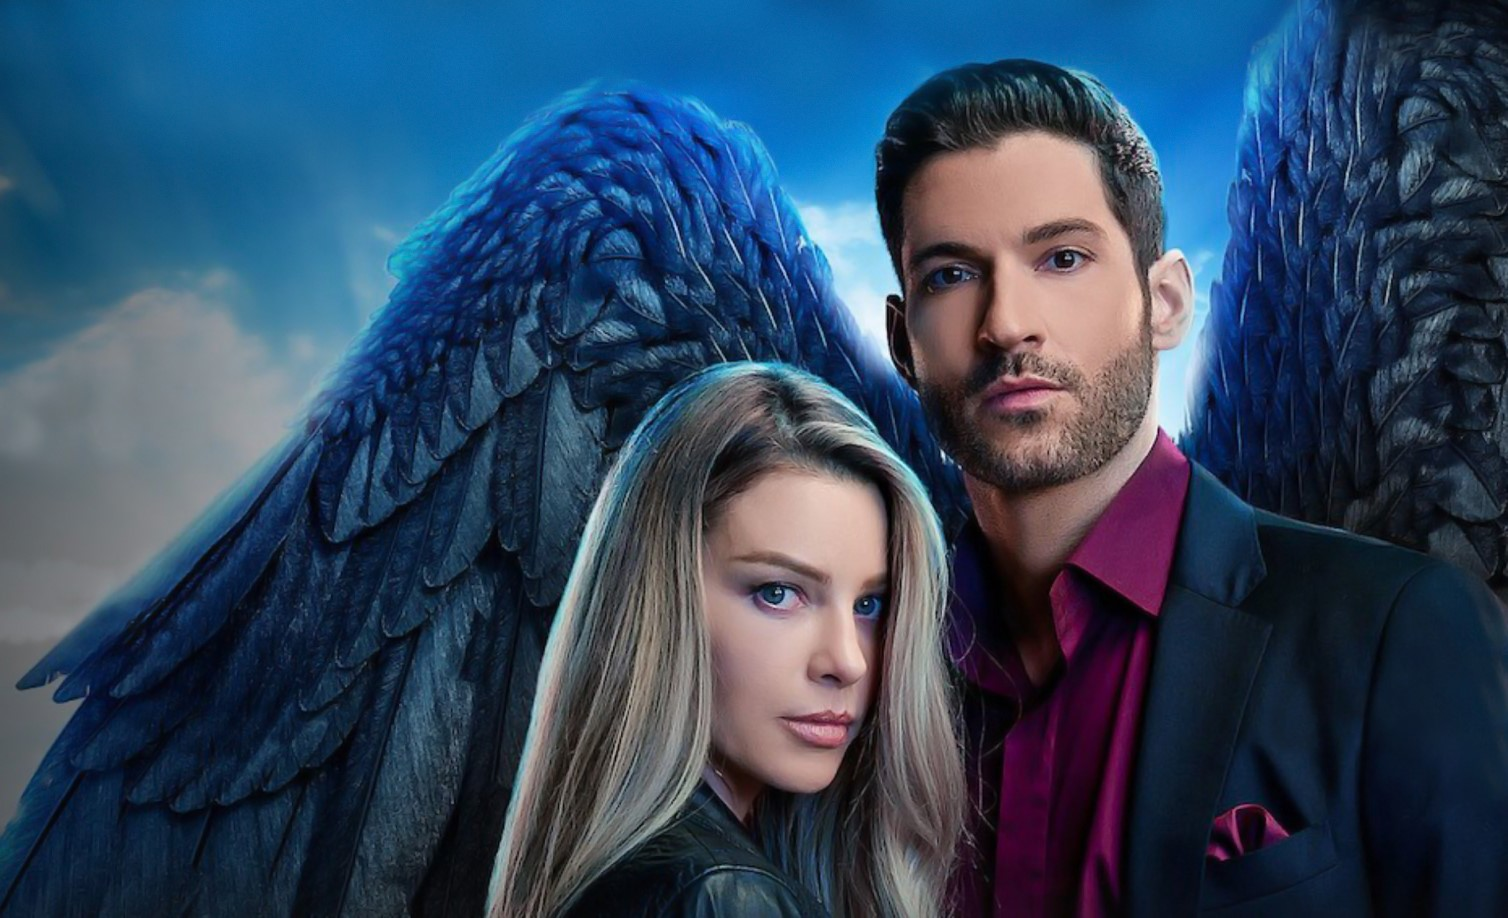 Tom Ellis wants to play New Characters after Lucifer Ends